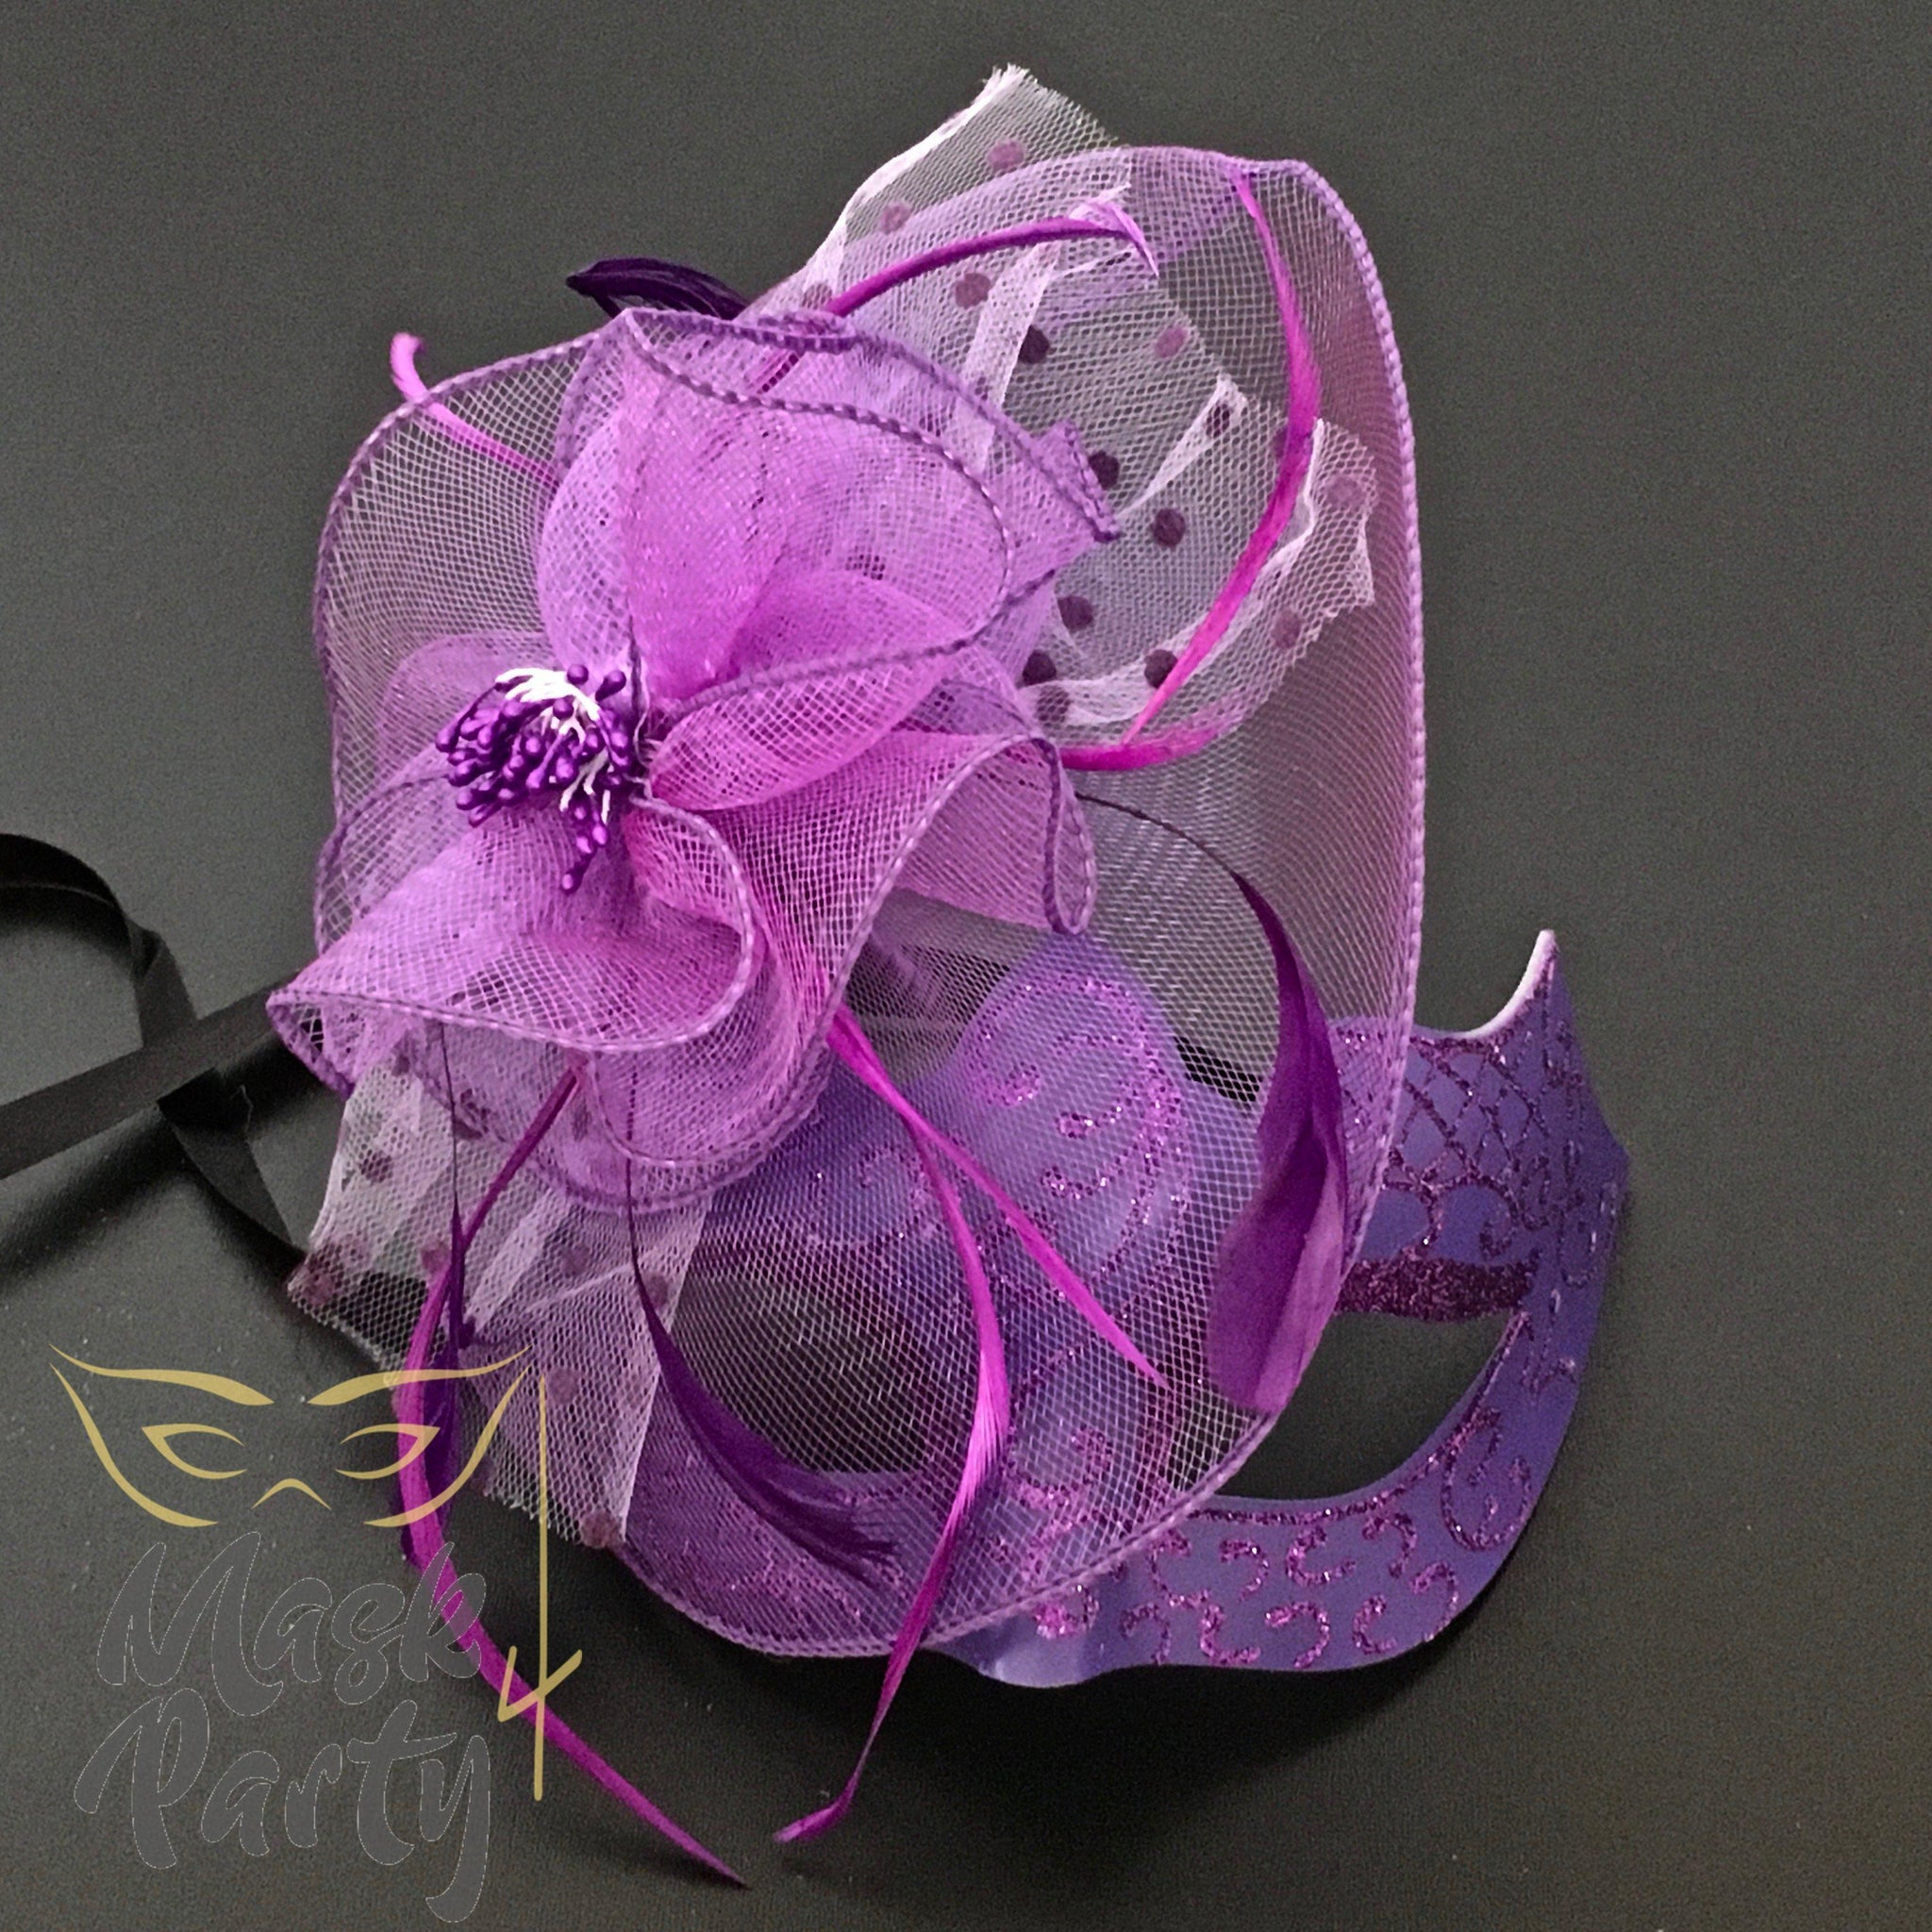 Masquerade Mask - Lace Flower w/ Net - Purple - Mask4Party